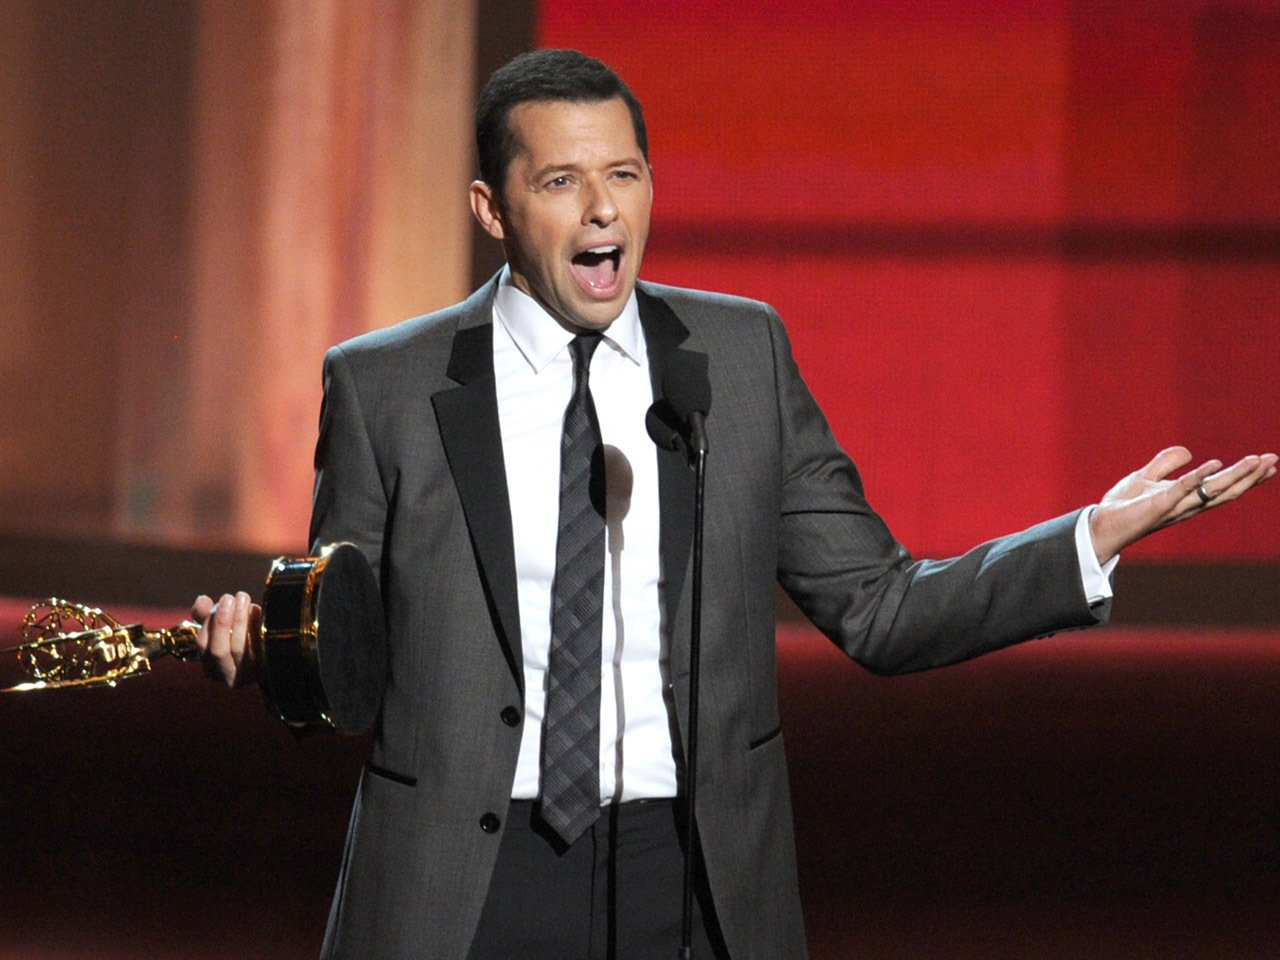 c 1 20 Things You Never Knew About Jon Cryer